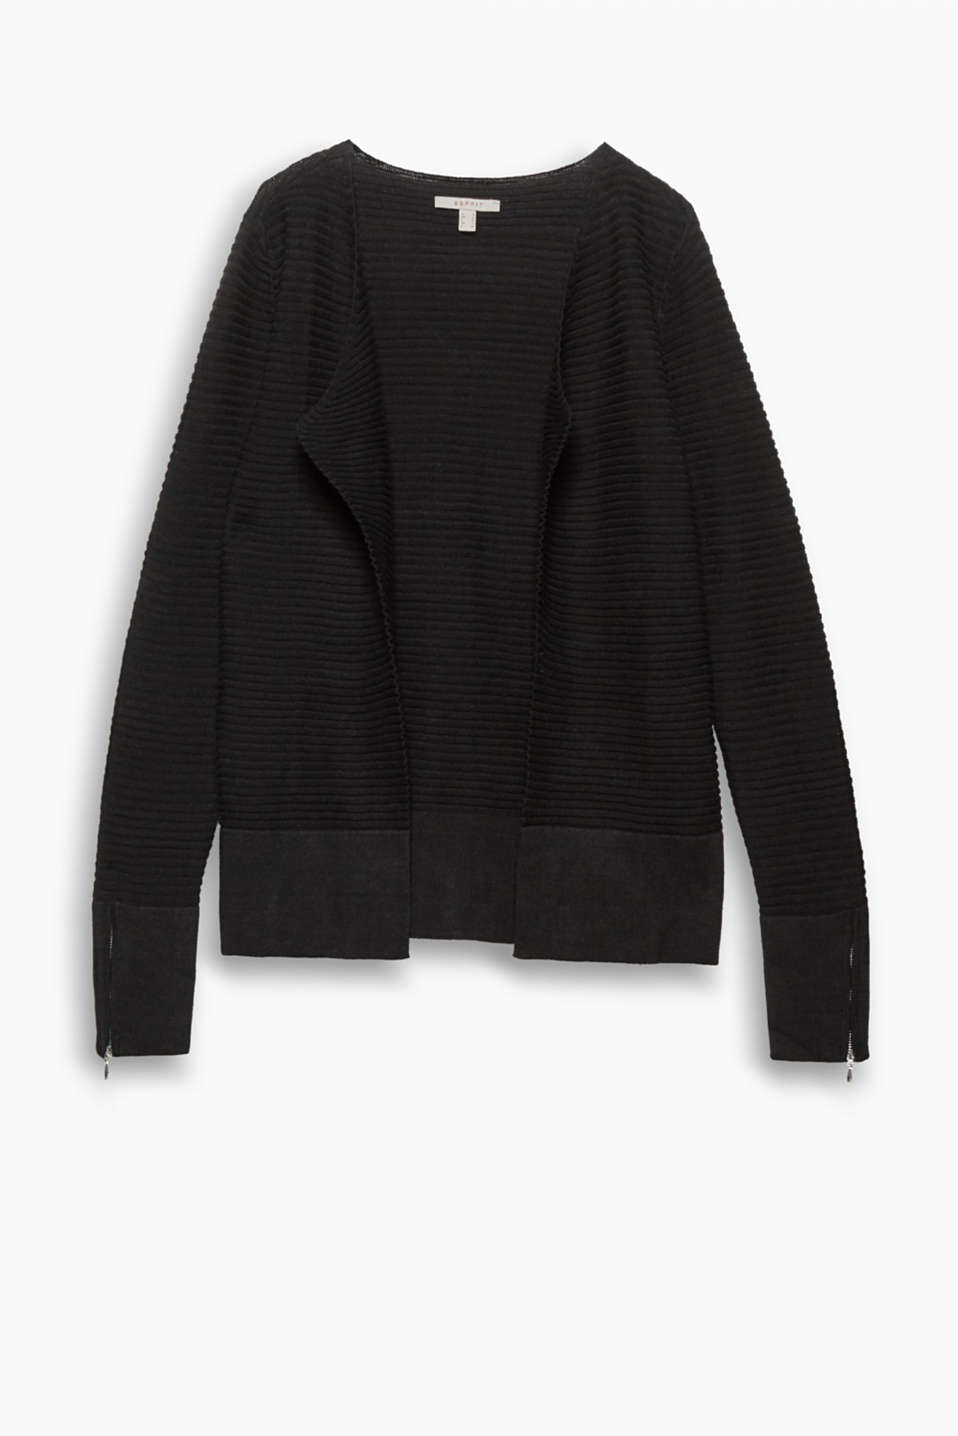 Firm fave both during and after pregnancy: open, ribbed knit cardigan with sleeve zips